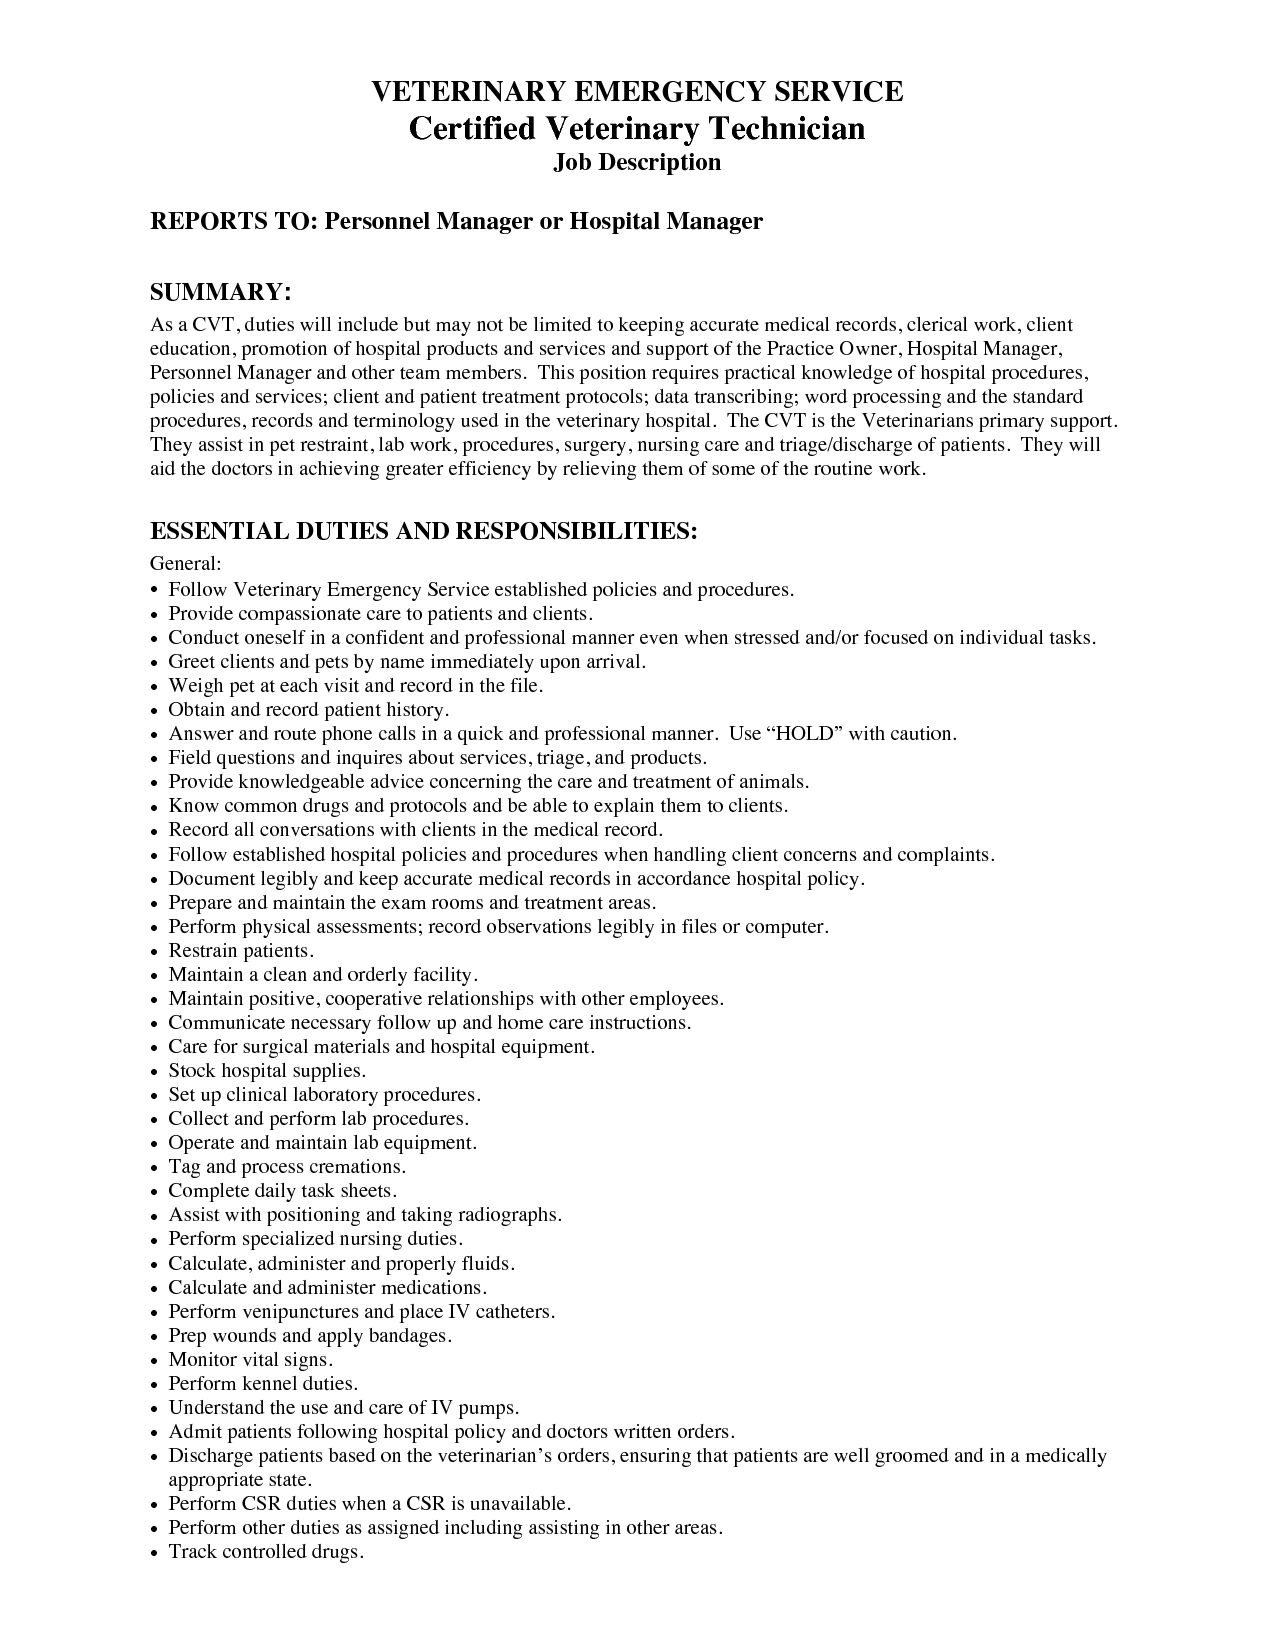 Veterinarian Resume Veterinary Technician Resume  My Work  Pinterest  Veterinary